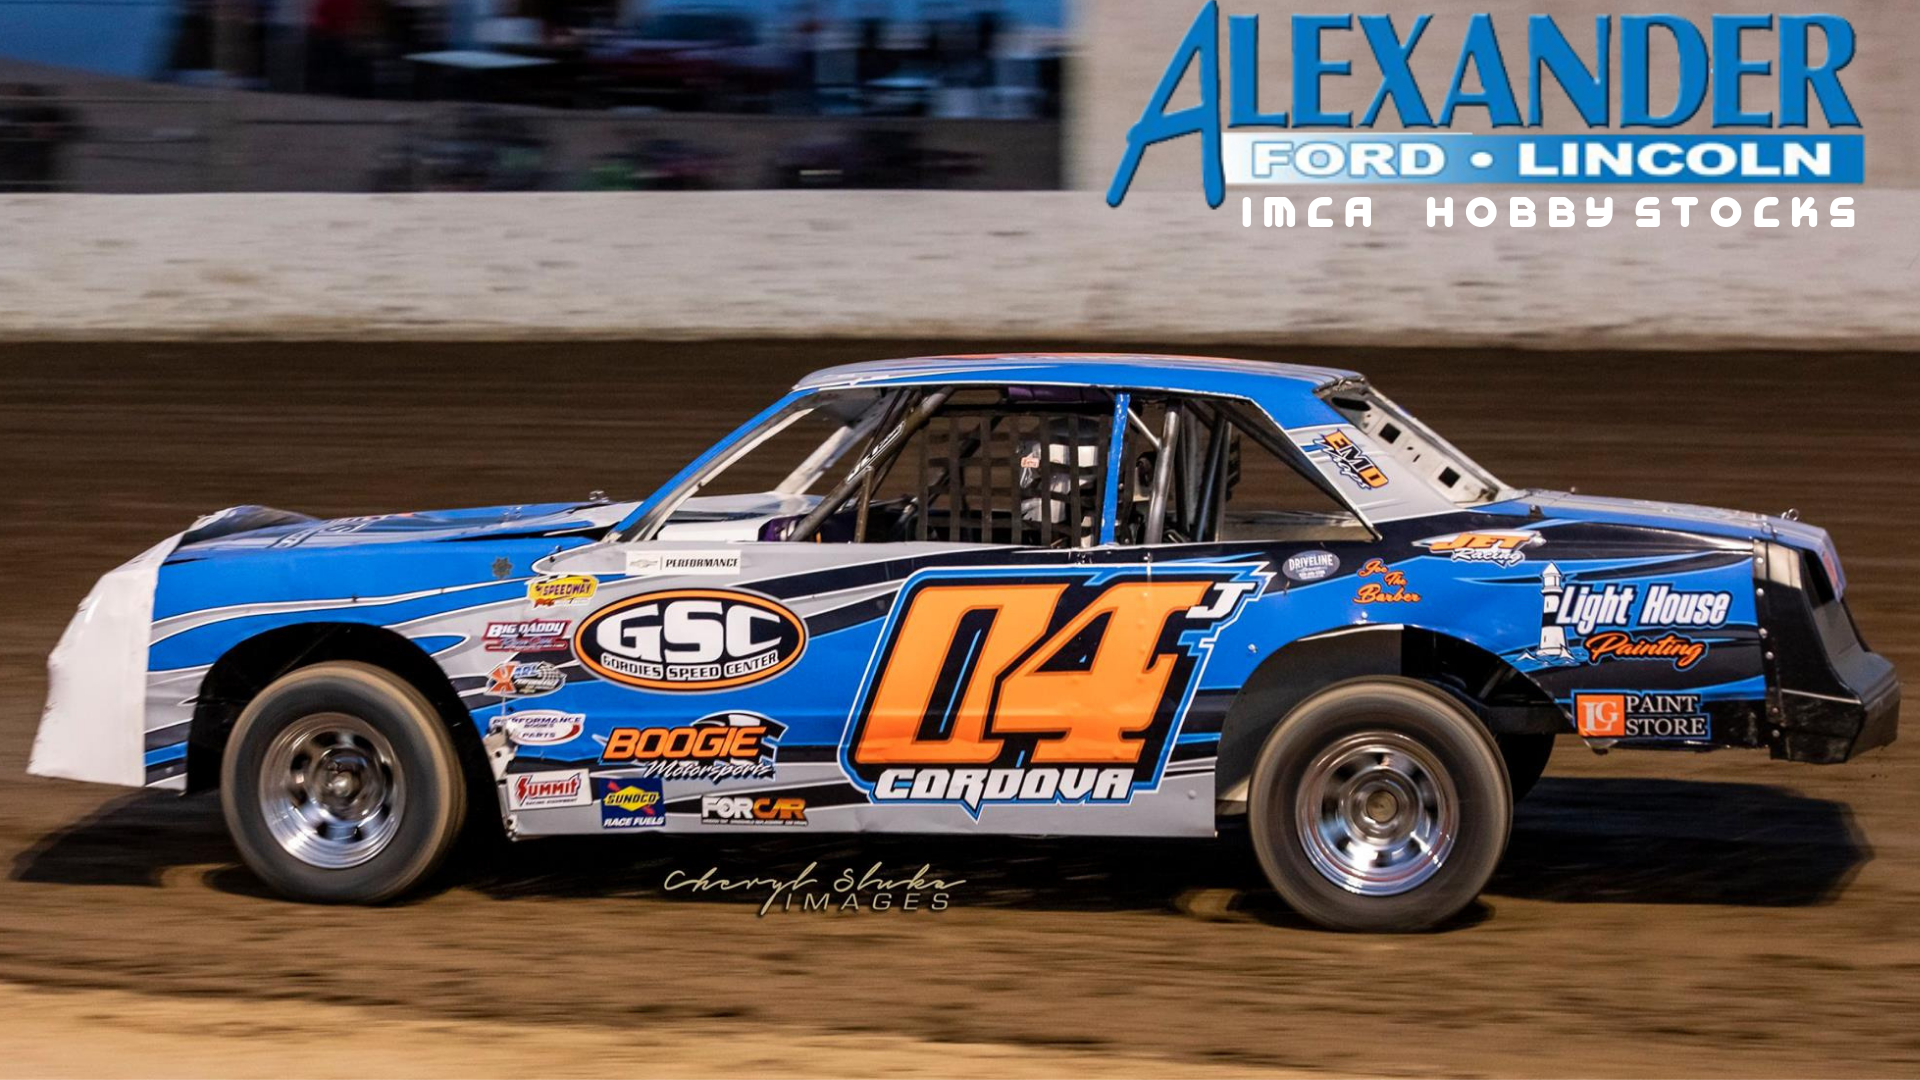 Alexander Ford IMCA Hobby Stocks points thru 04/20/19